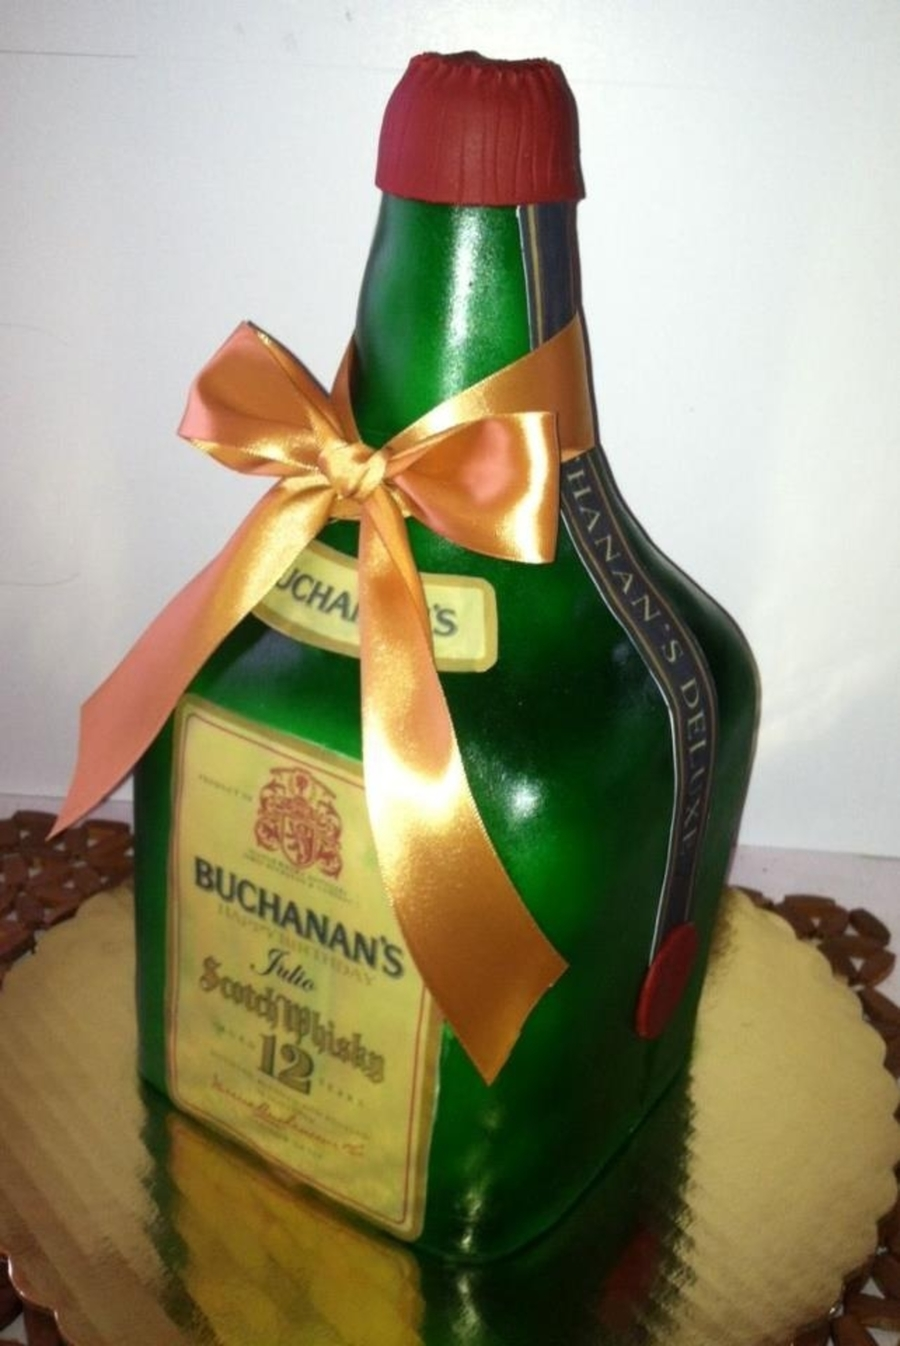 Buchanan's Bottle on Cake Central